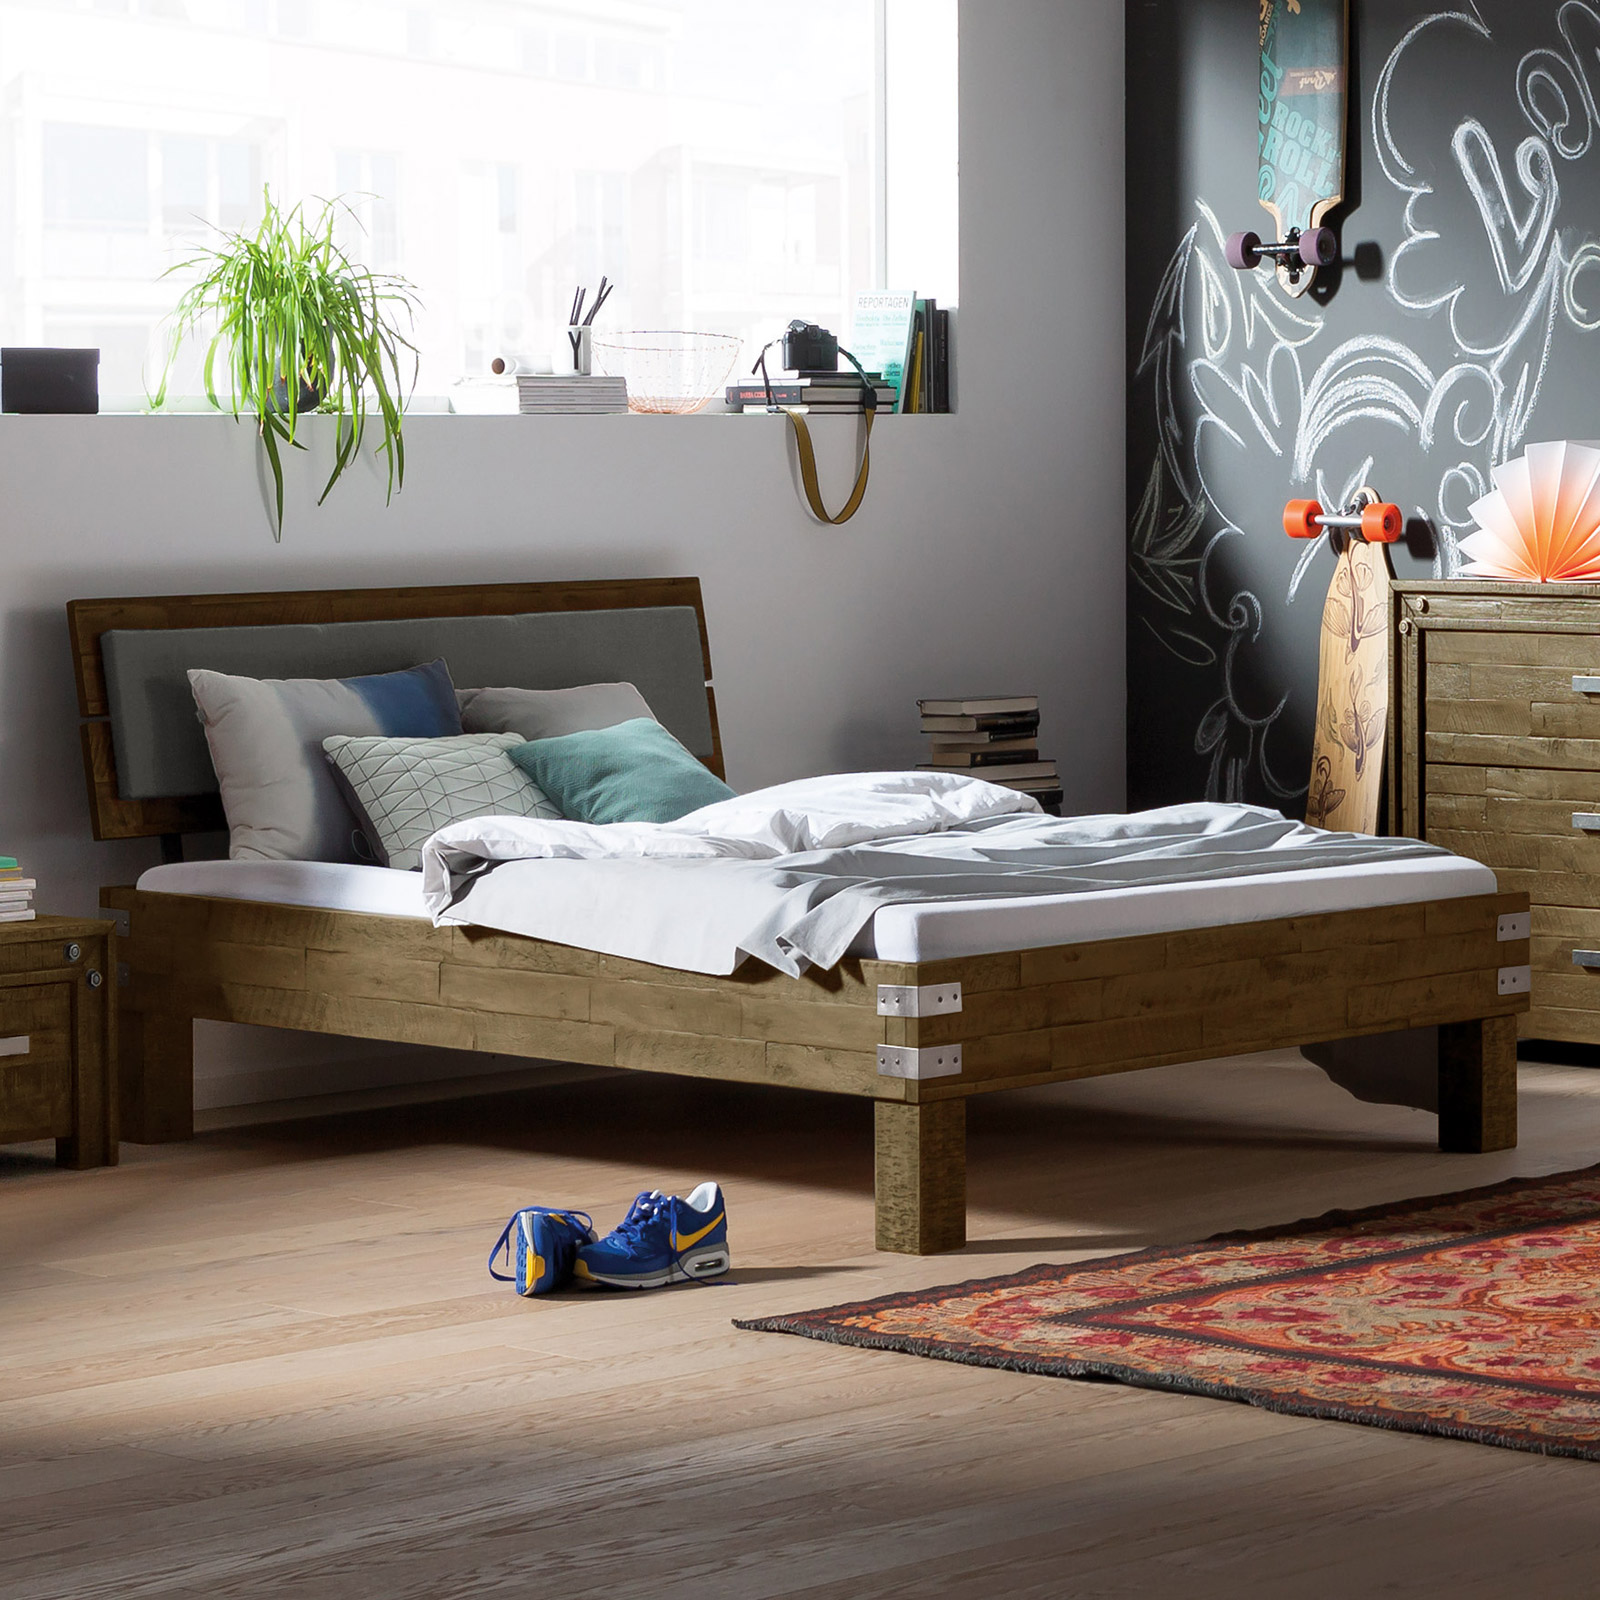 jugendbett aus akazie im industrial style felipe. Black Bedroom Furniture Sets. Home Design Ideas